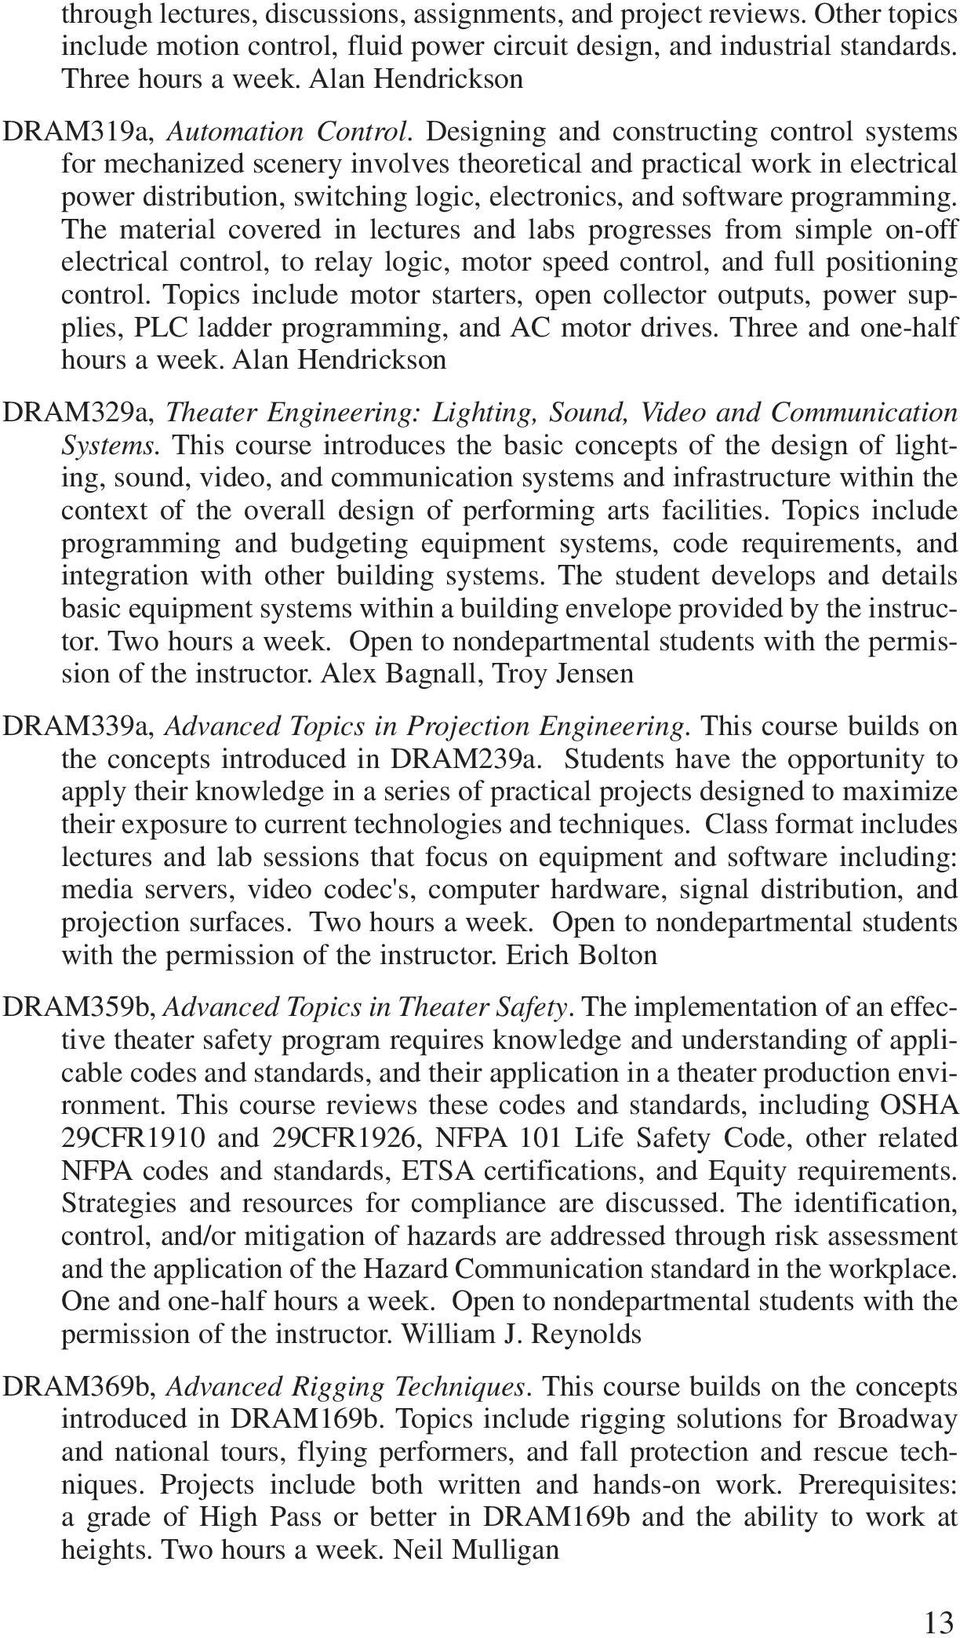 James Bundy Dean Of Yale School Drama Artistic Director The On Off Relay Logic Designing And Constructing Control Systems For Mechanized Scenery Involves Theoretical Practical Work In Electrical Power